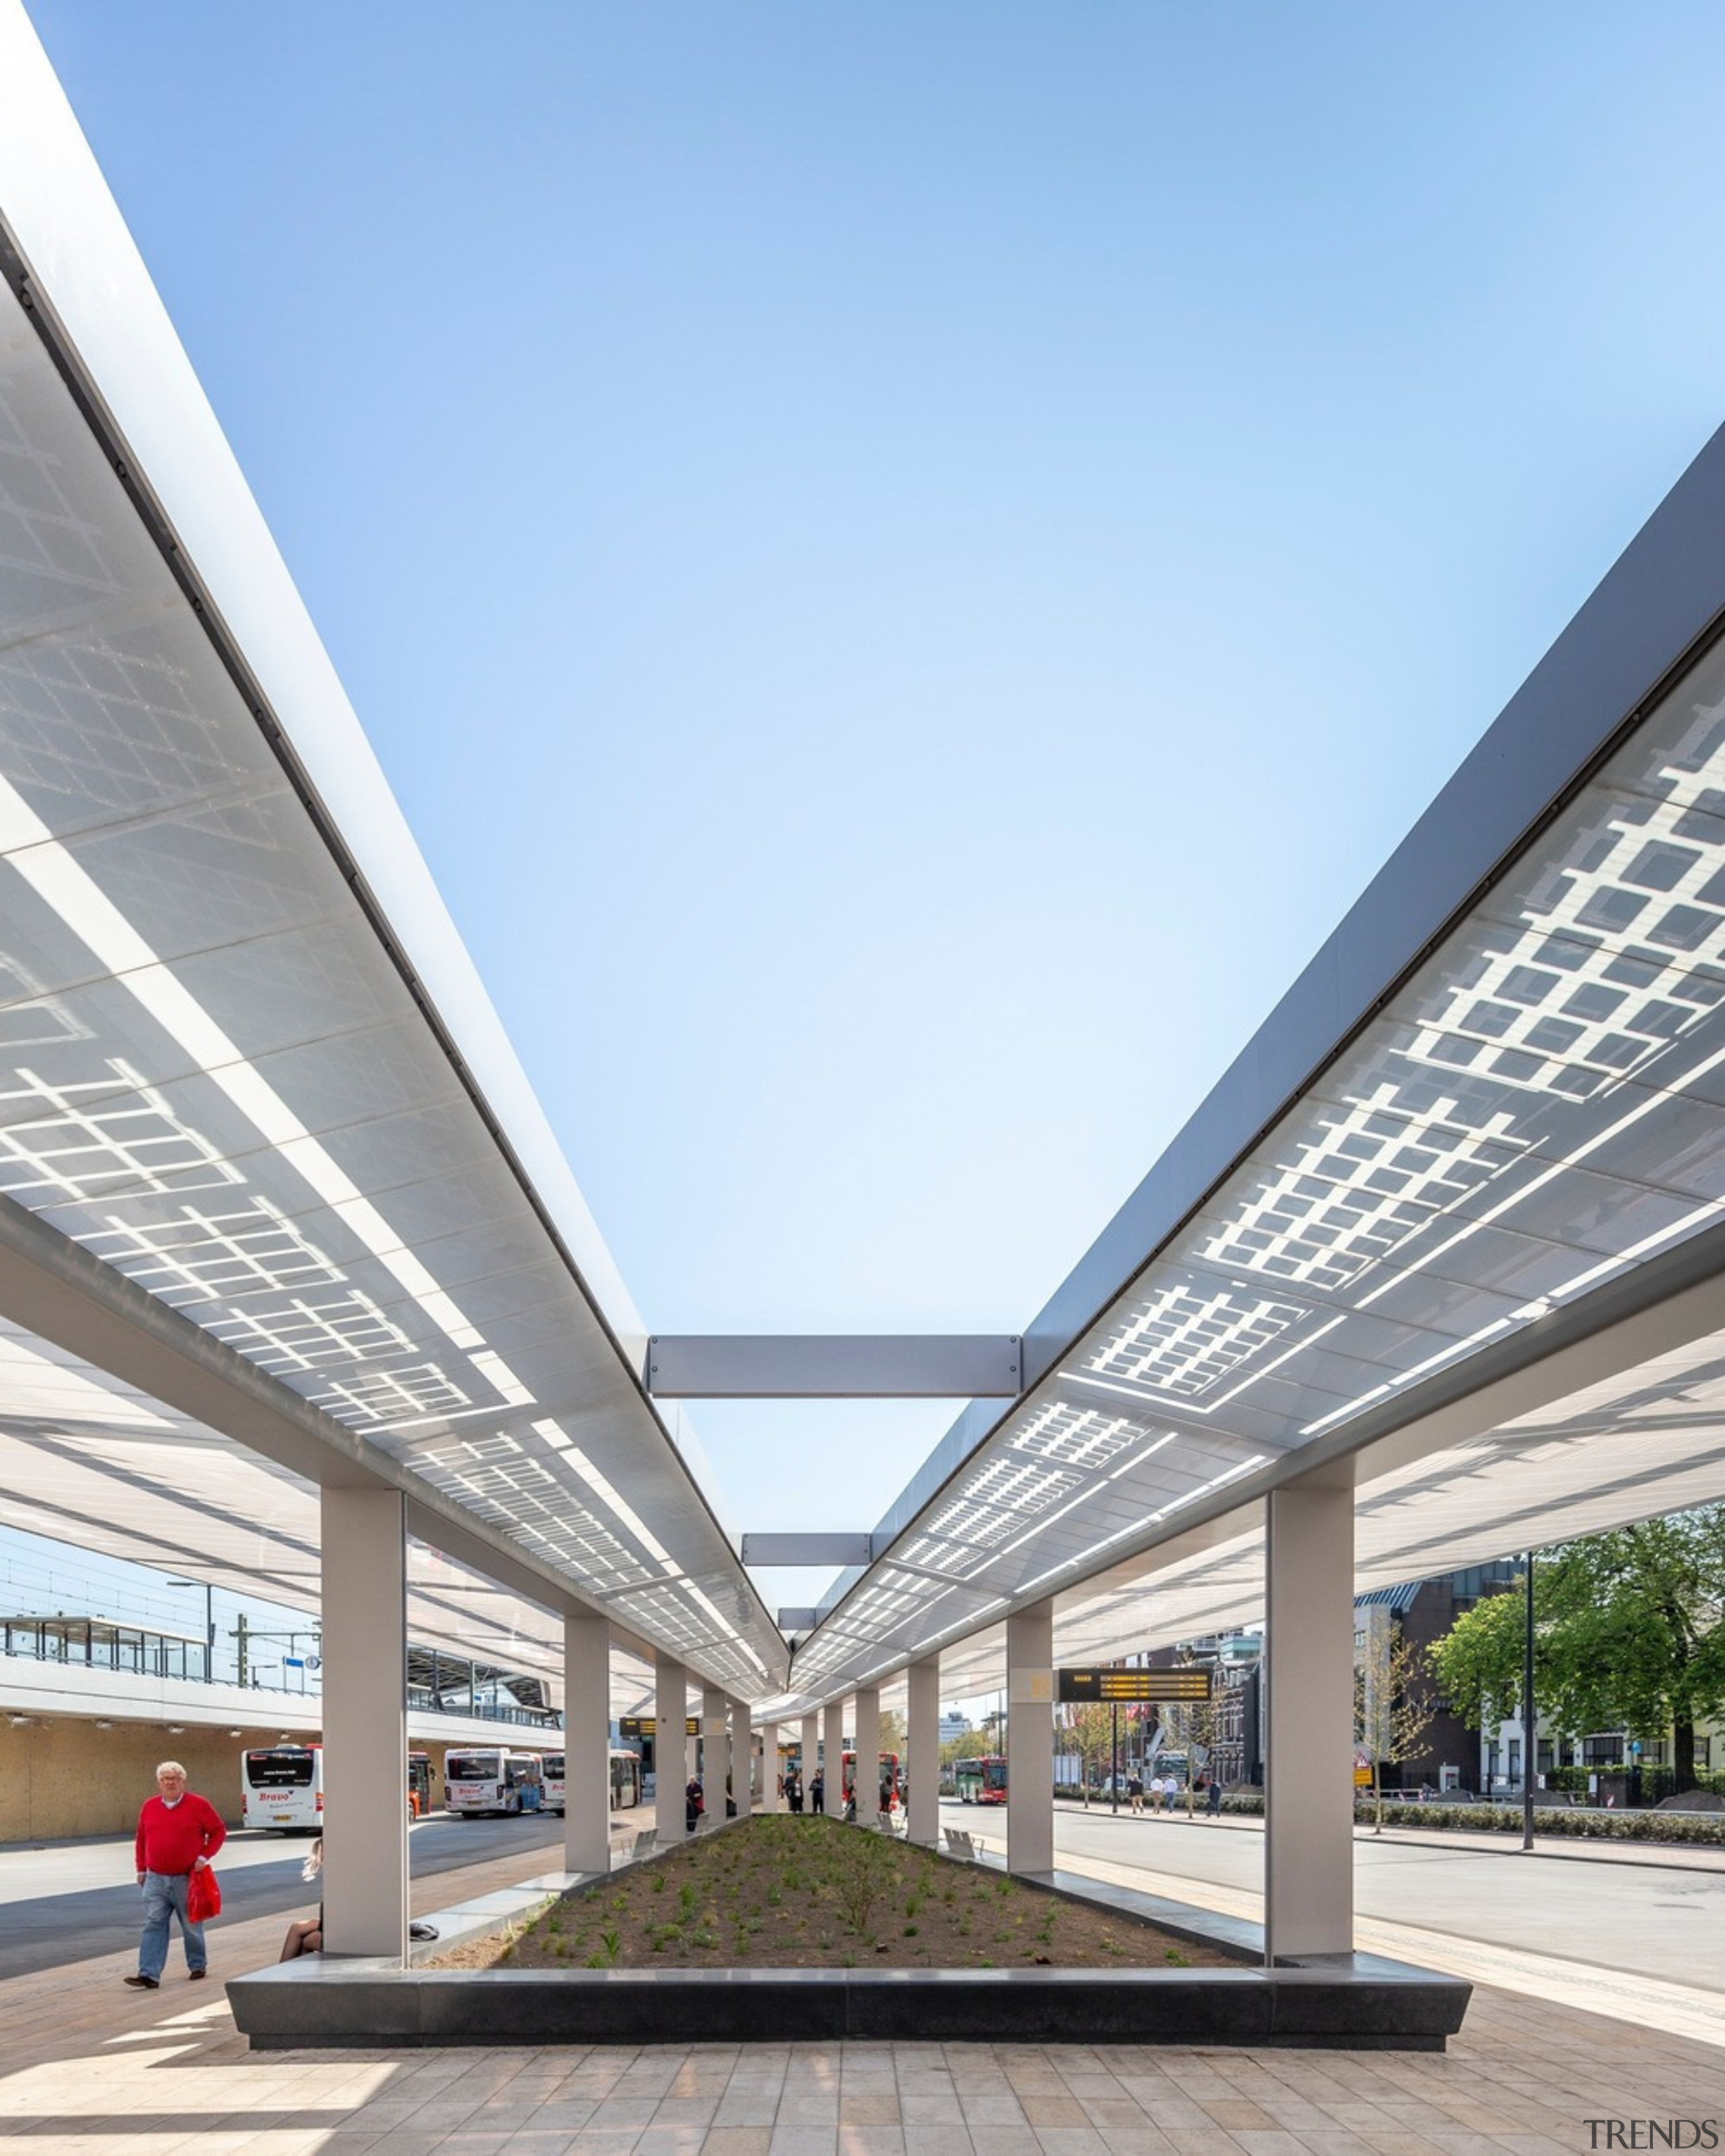 The basic setup consists of a series of architecture, building, daylighting, facade, sky, walkway, white, teal